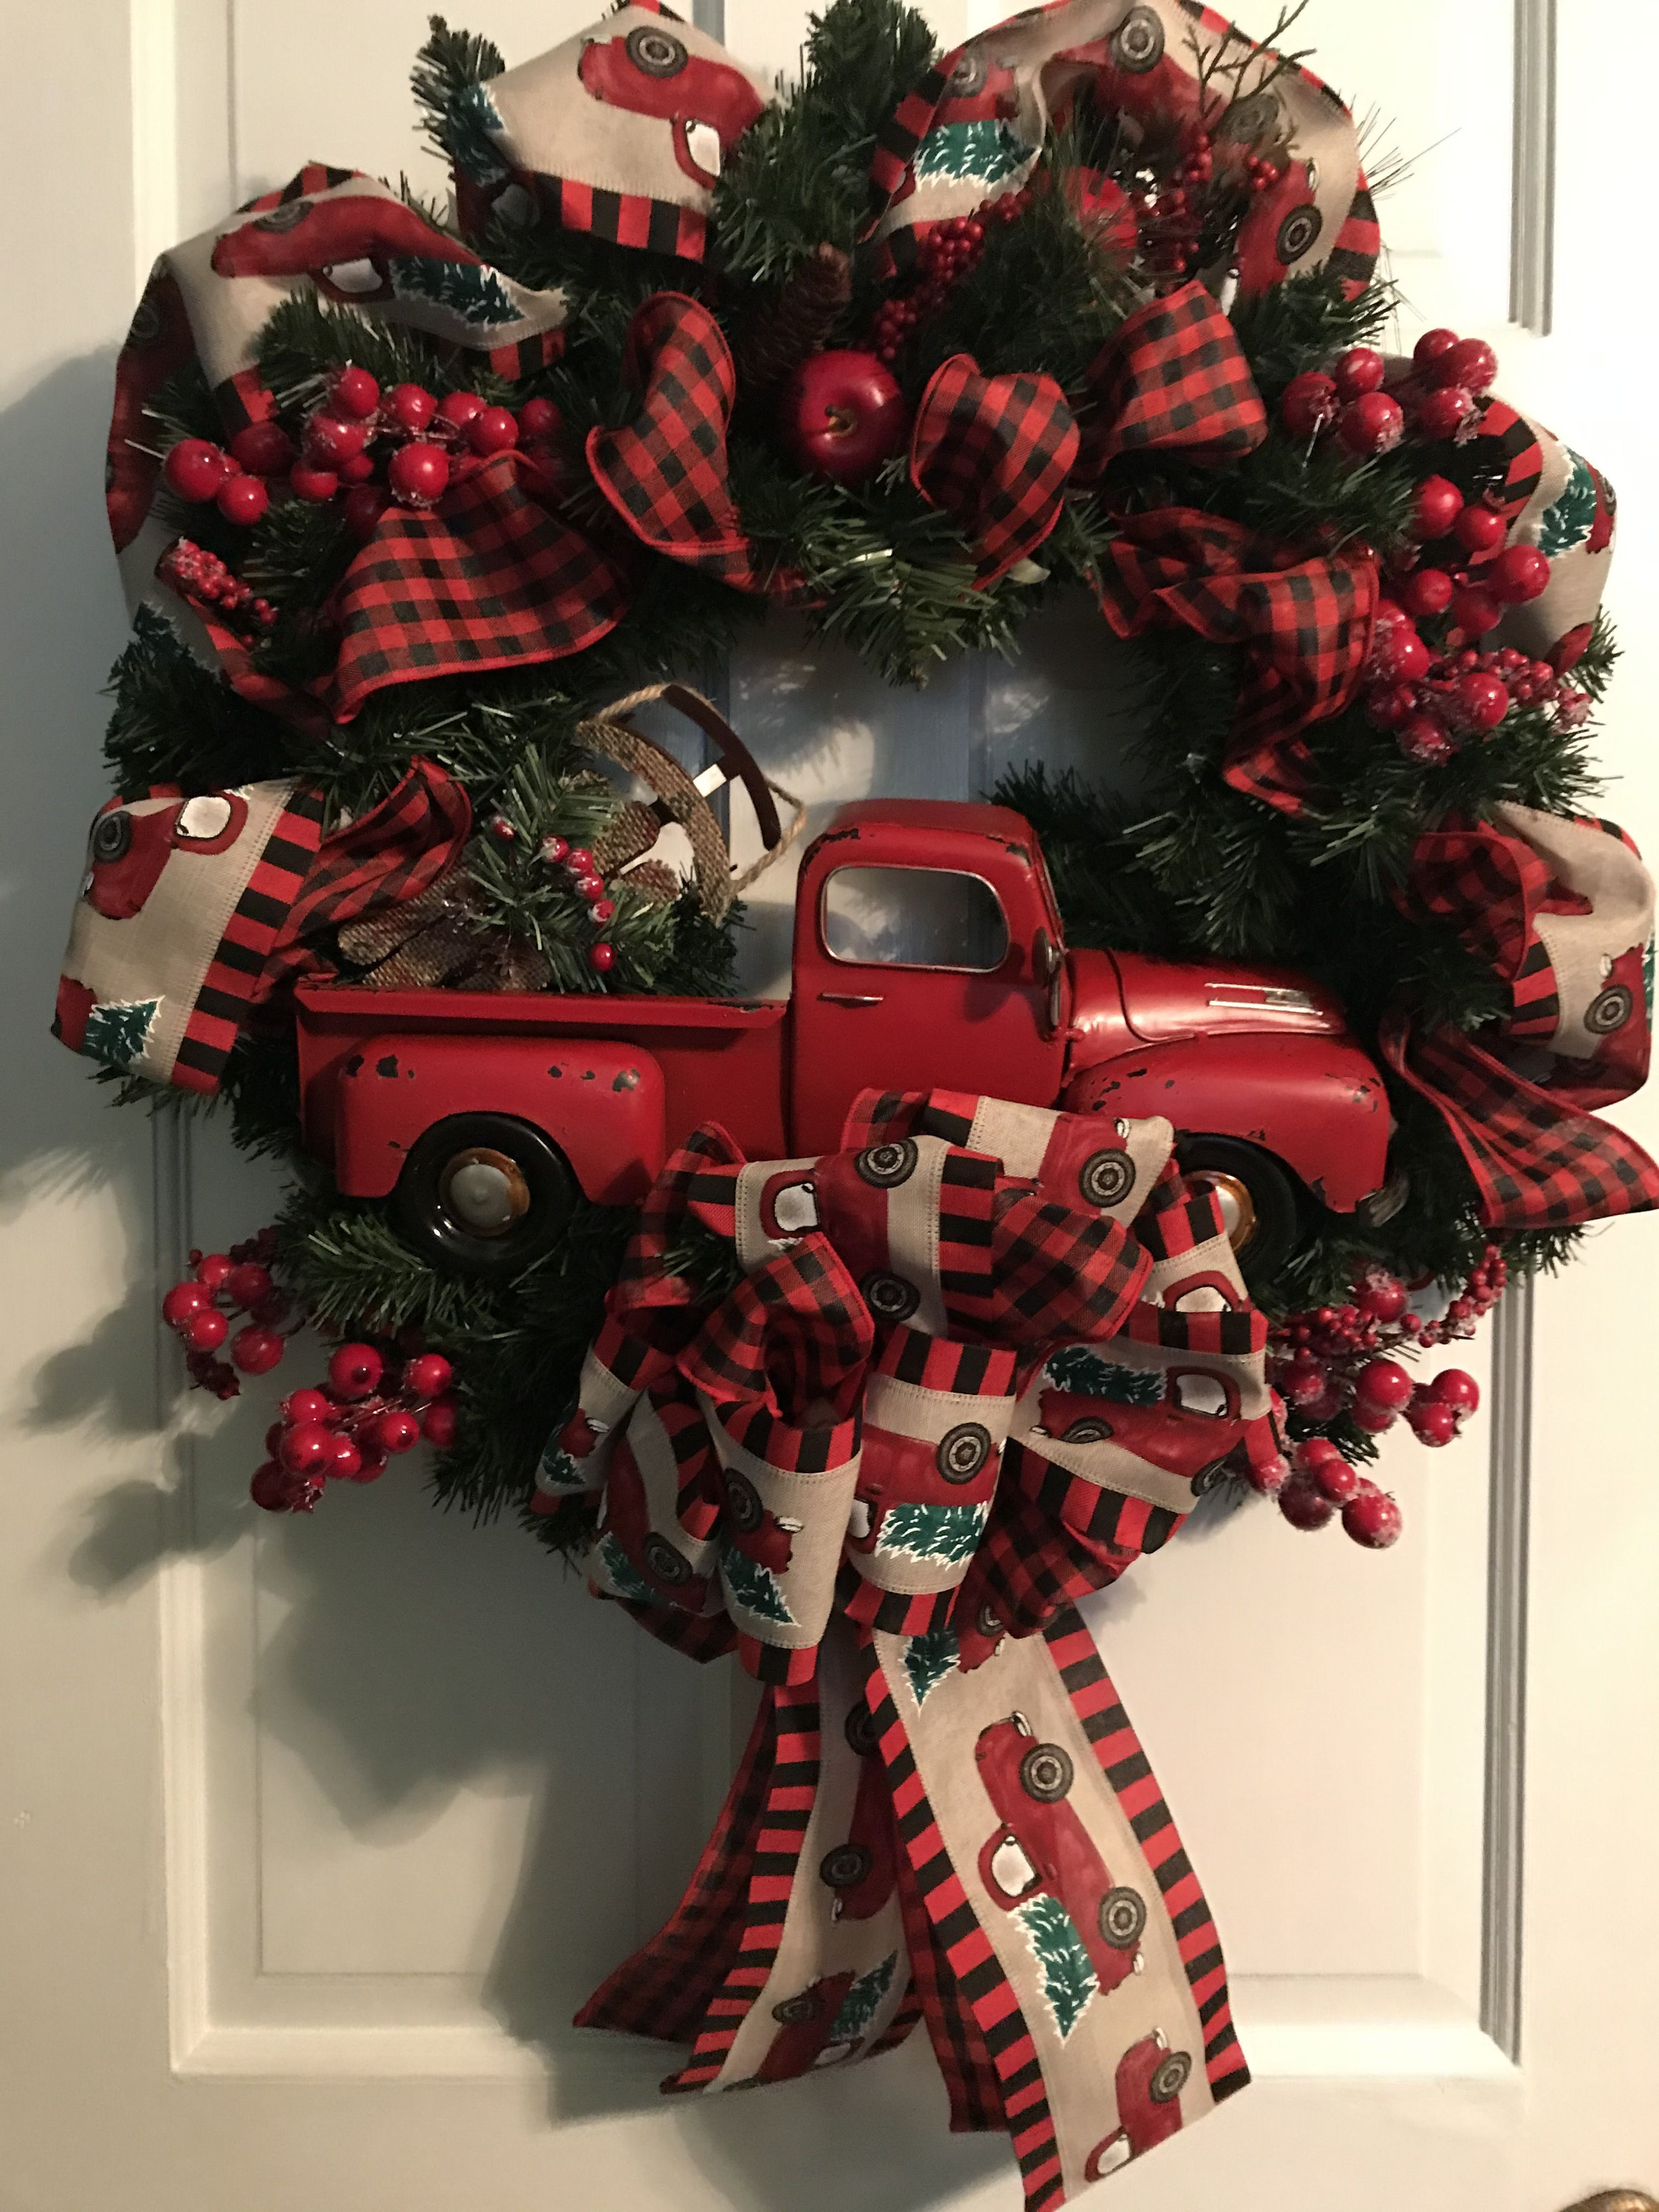 Pin By Lynn Langley On Wreaths And Flower Arrangements In 2020 Holiday Decor Christmas Wreaths Flower Arrangements